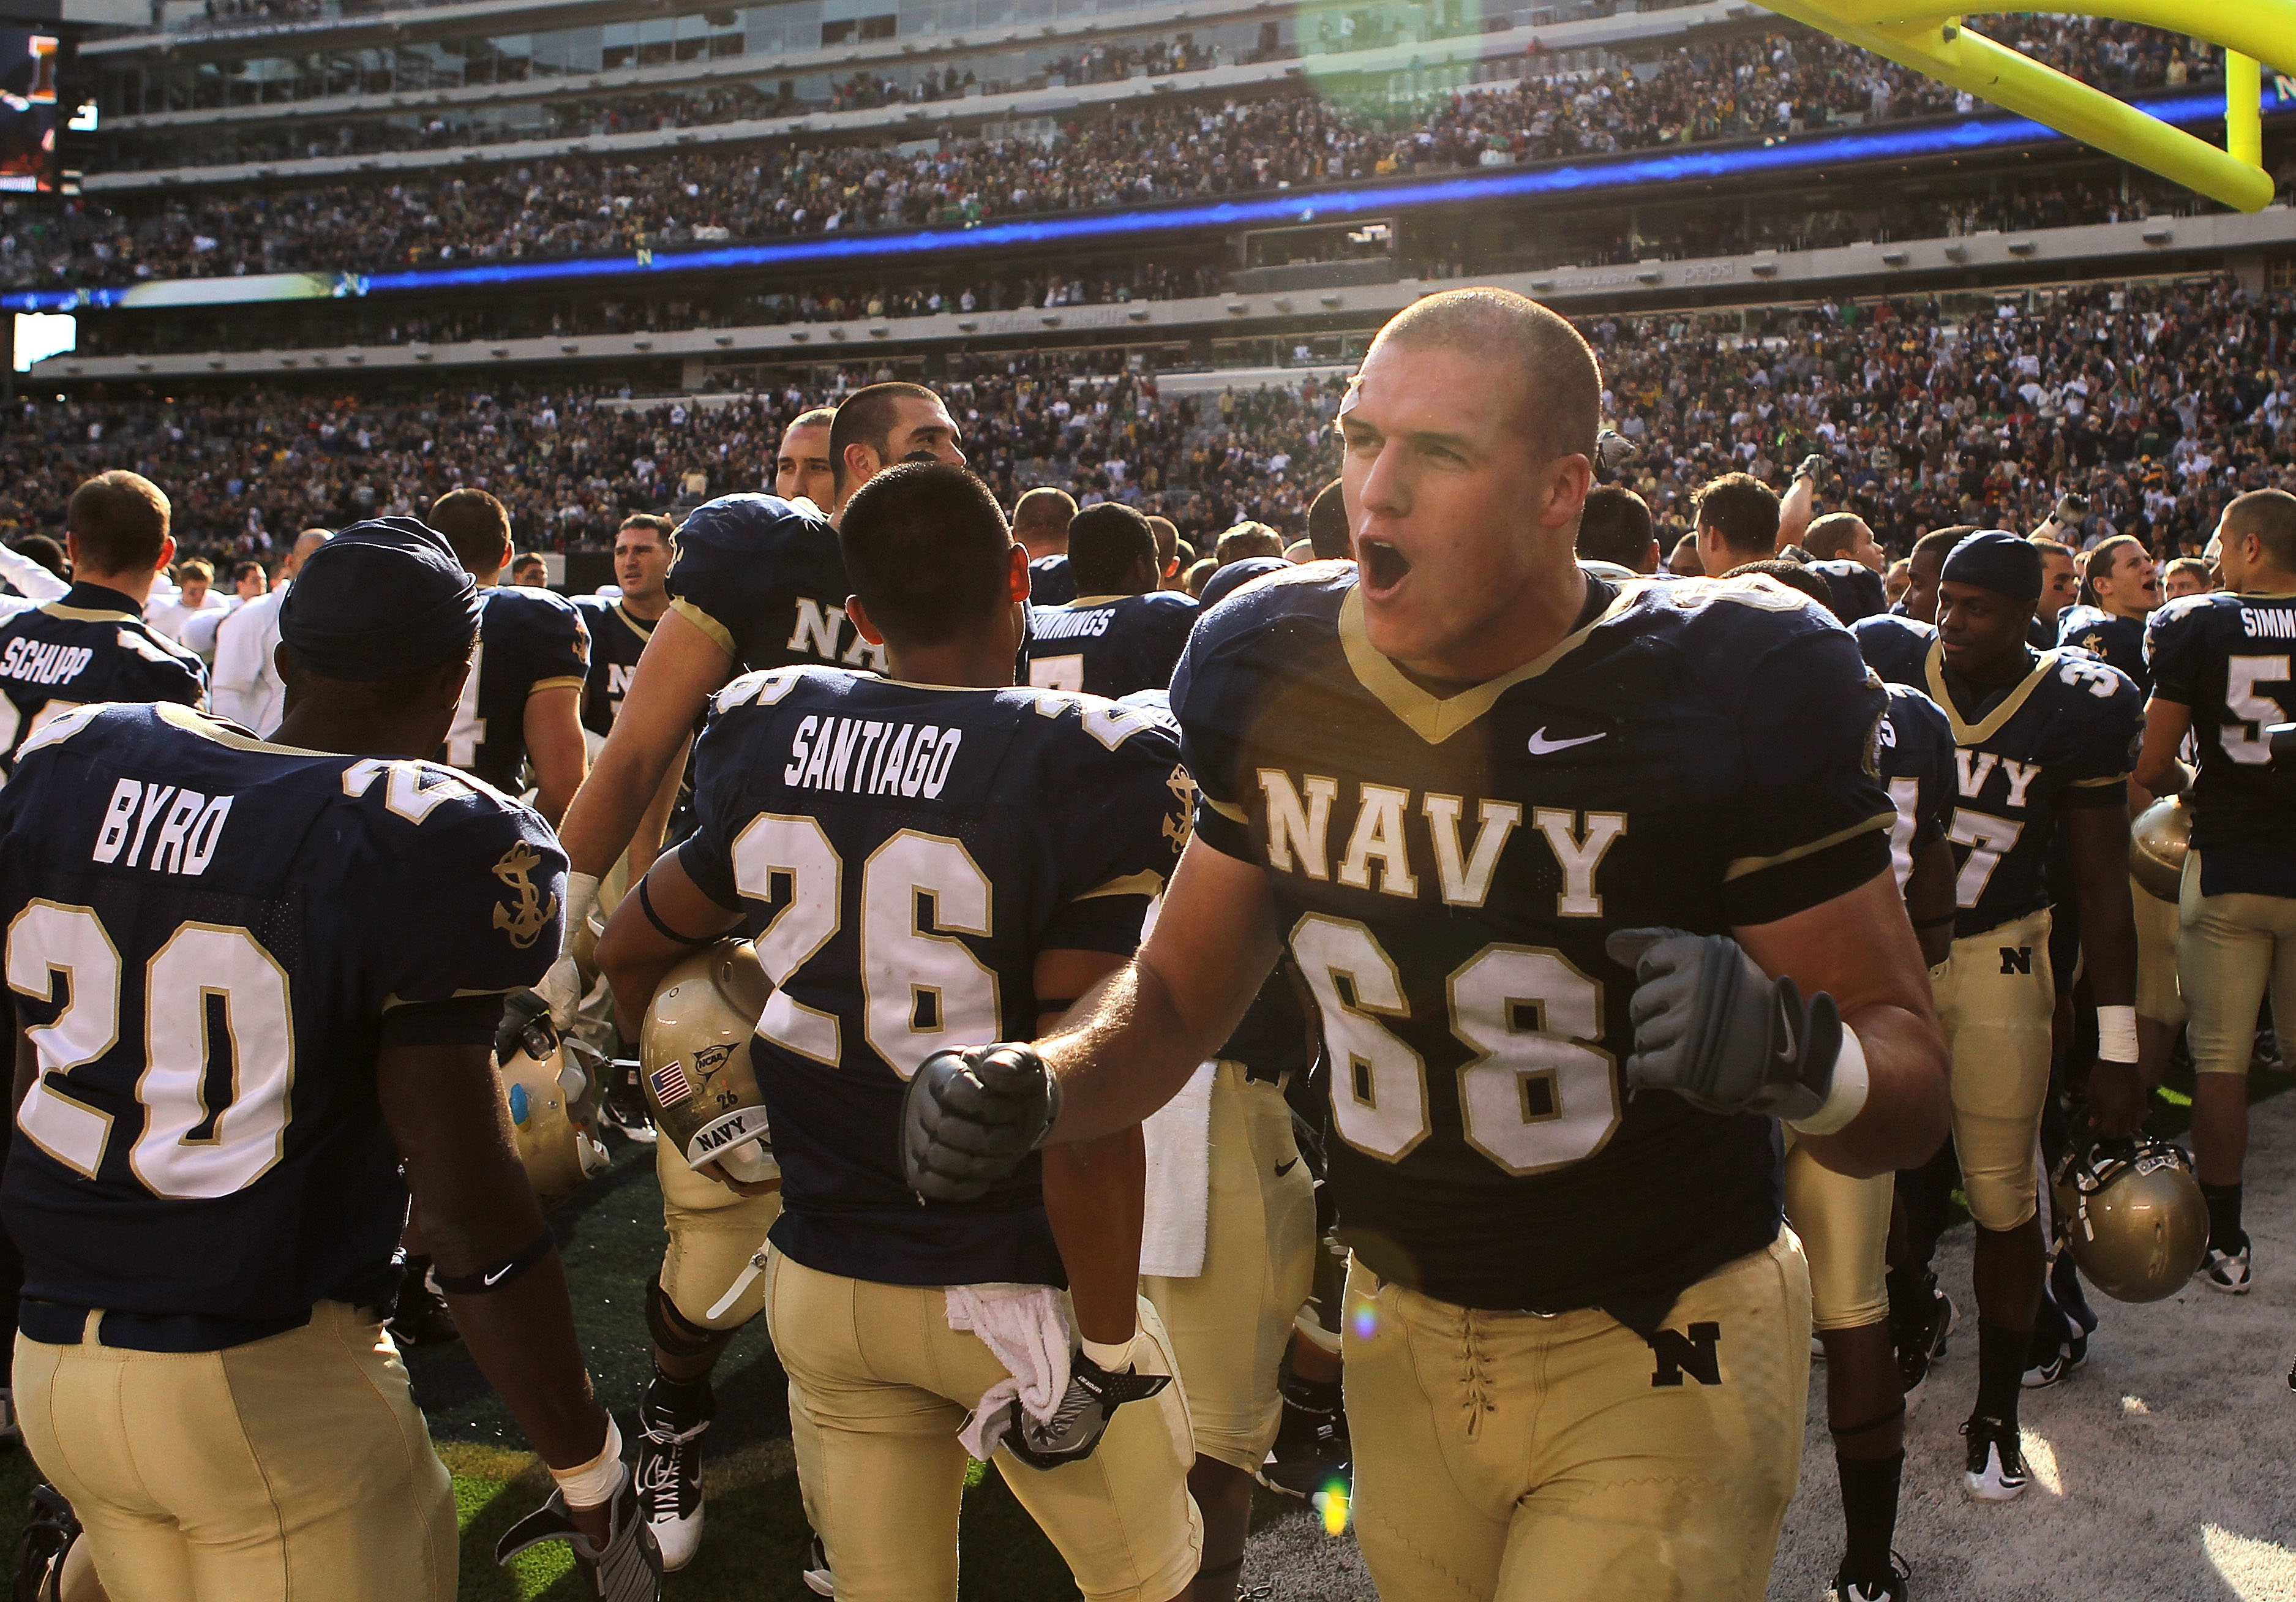 EAST RUTHERFORD, NJ - OCTOBER 23: John Dowd #68 of the Navy Midshipmen celebrates the win after the game against the Notre Dame Fighting Irish at New Meadowlands Stadium on October 23, 2010 in East Rutherford, New Jersey.  (Photo by Nick Laham/Getty Image